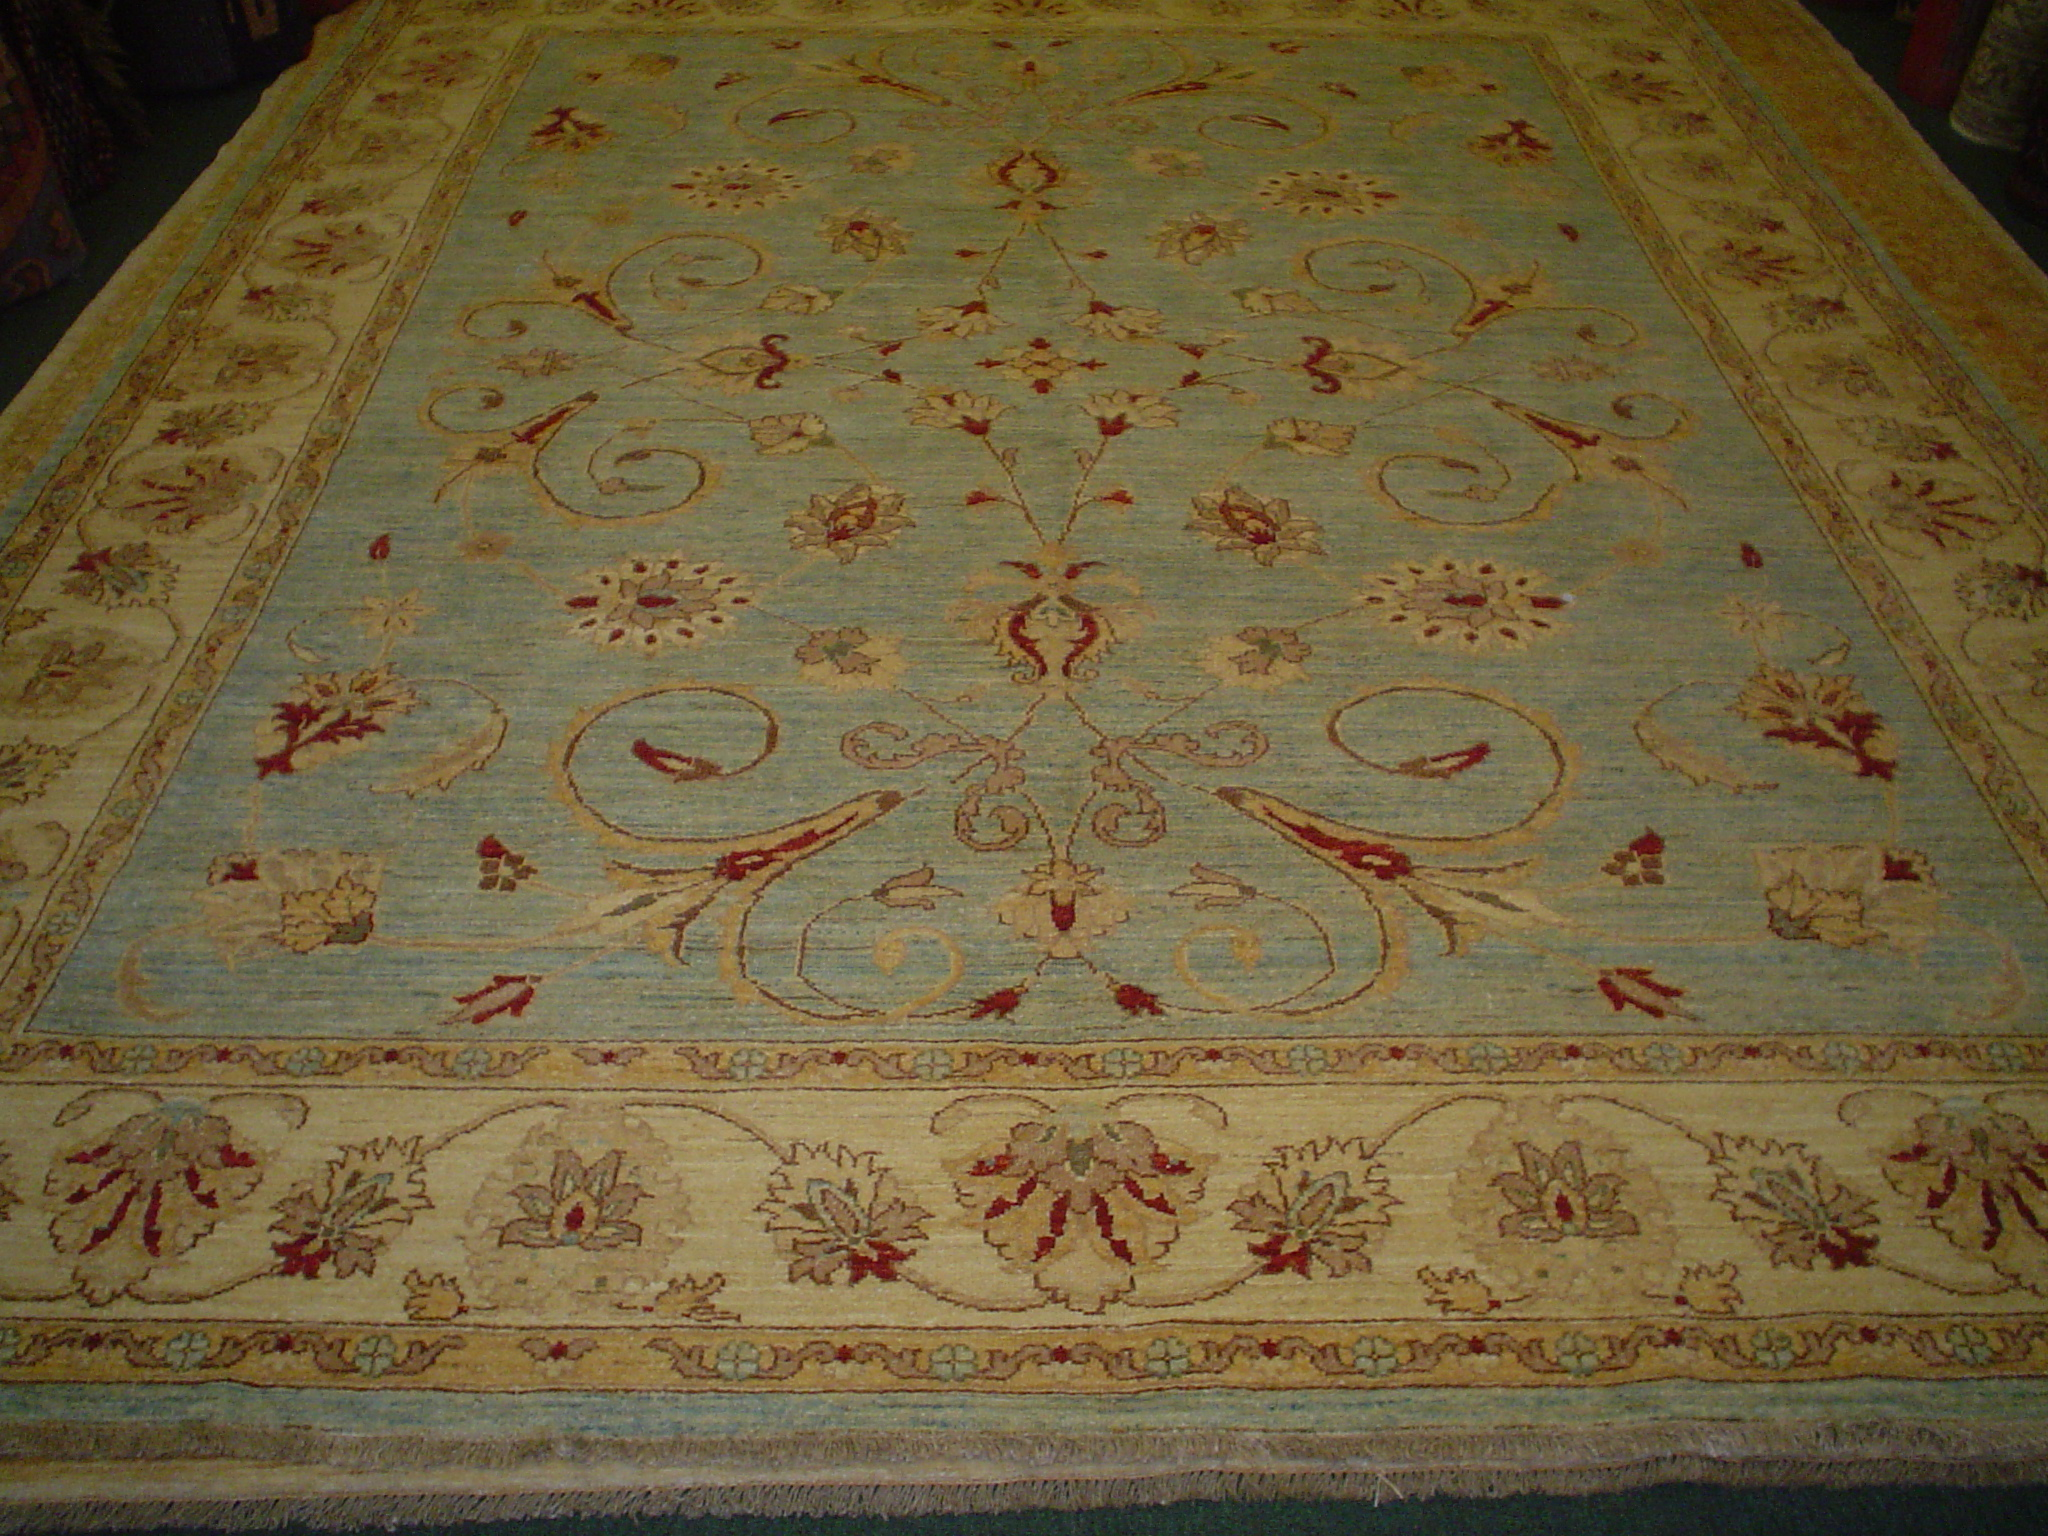 #4) 8 x 10 light blue Afghan rug in an overall Herati design.